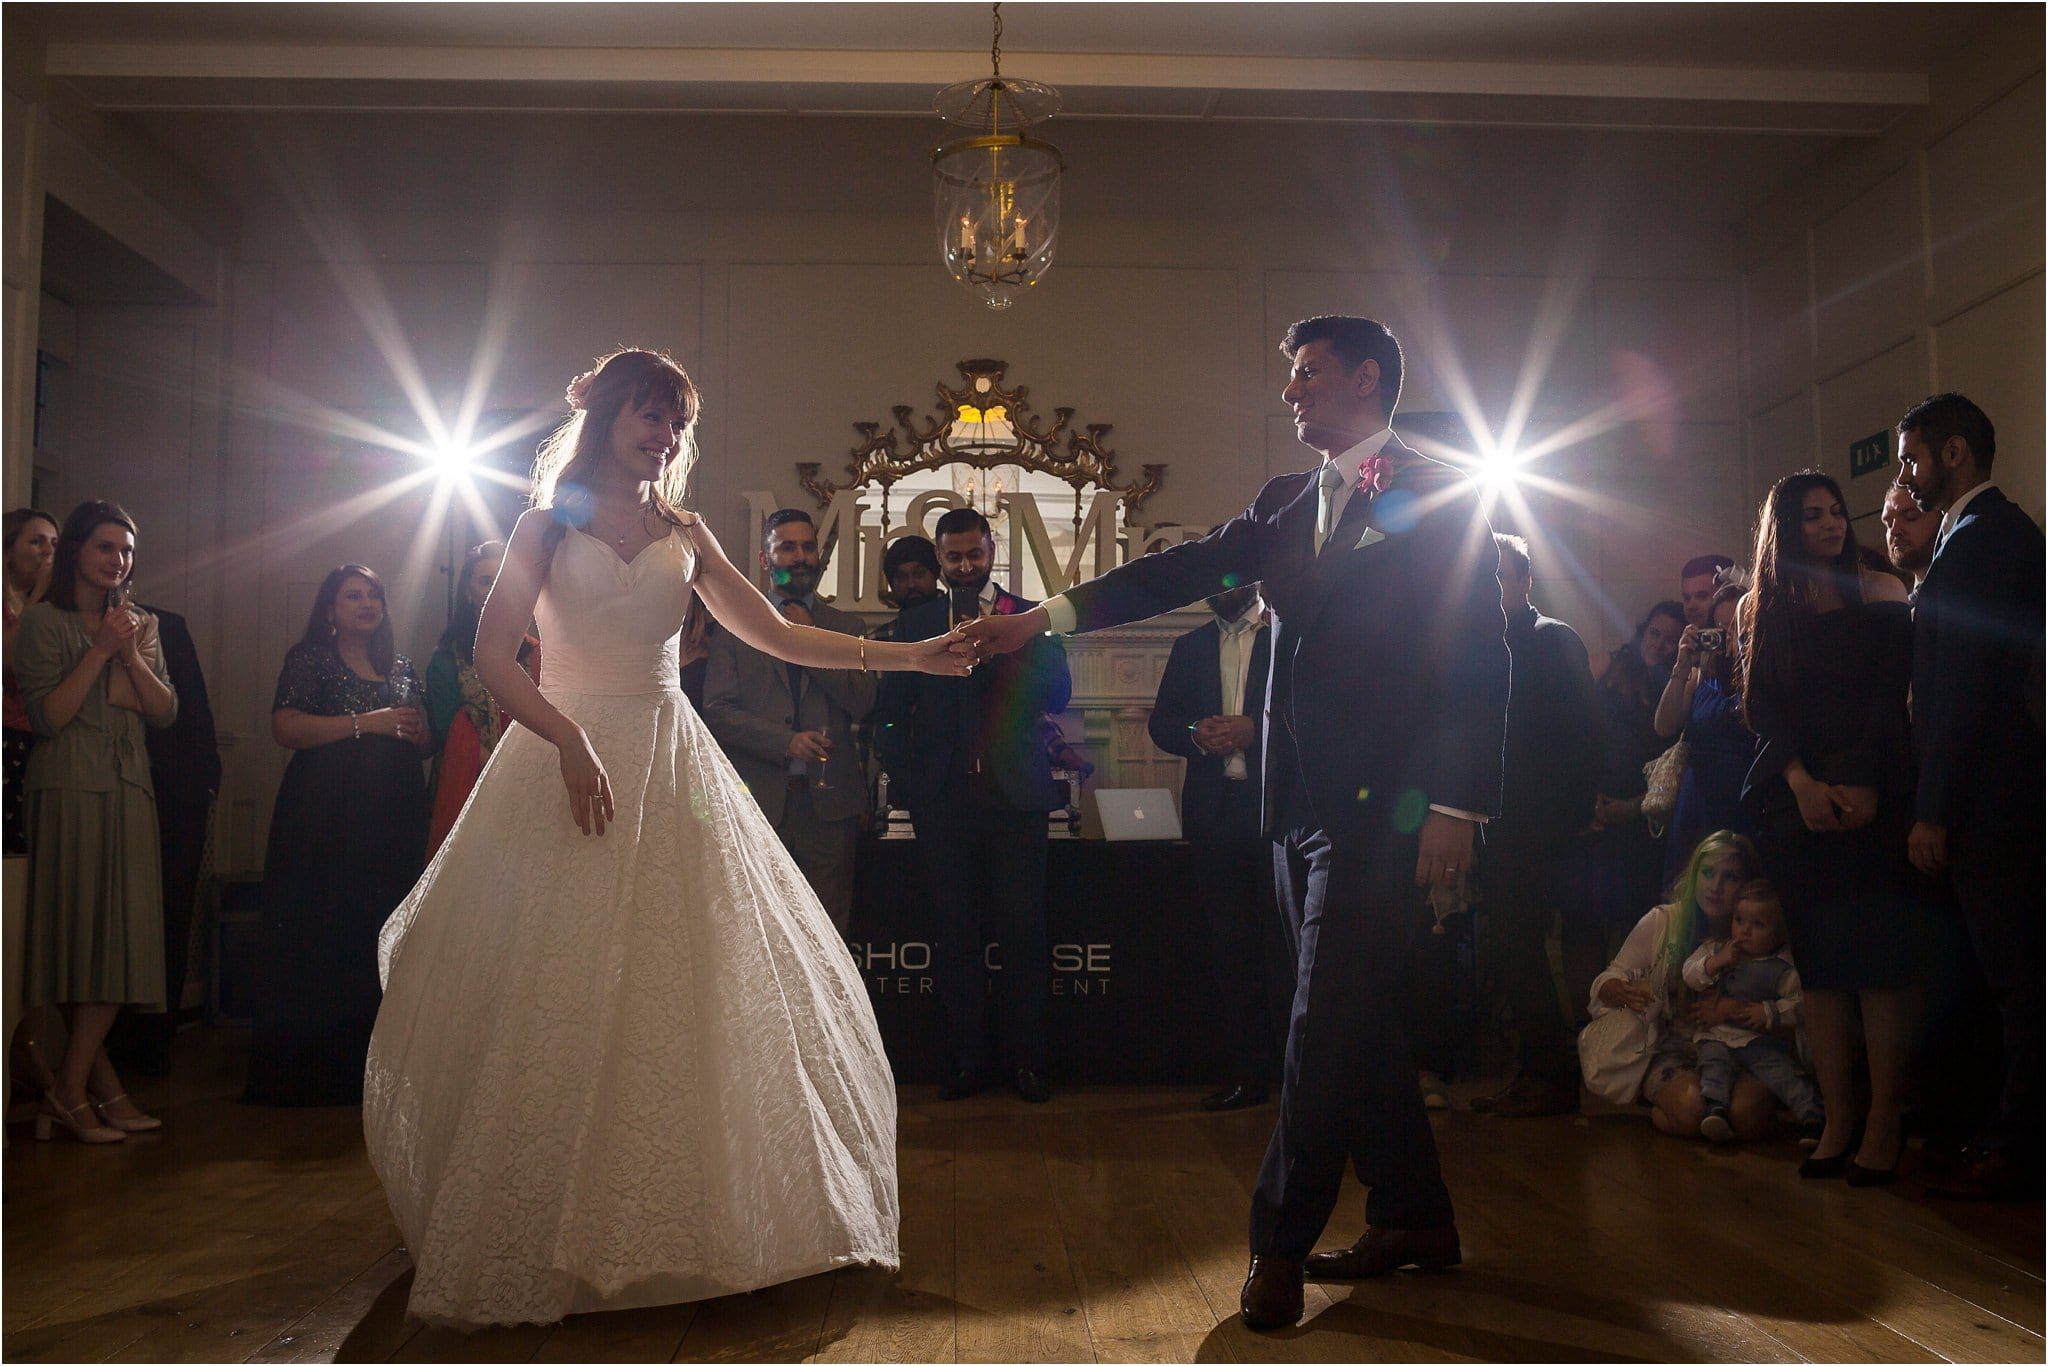 A couple performing their first dance on their wedding day with star lights in the background. Image by S2 Images, Hampden House Wedding Photographer